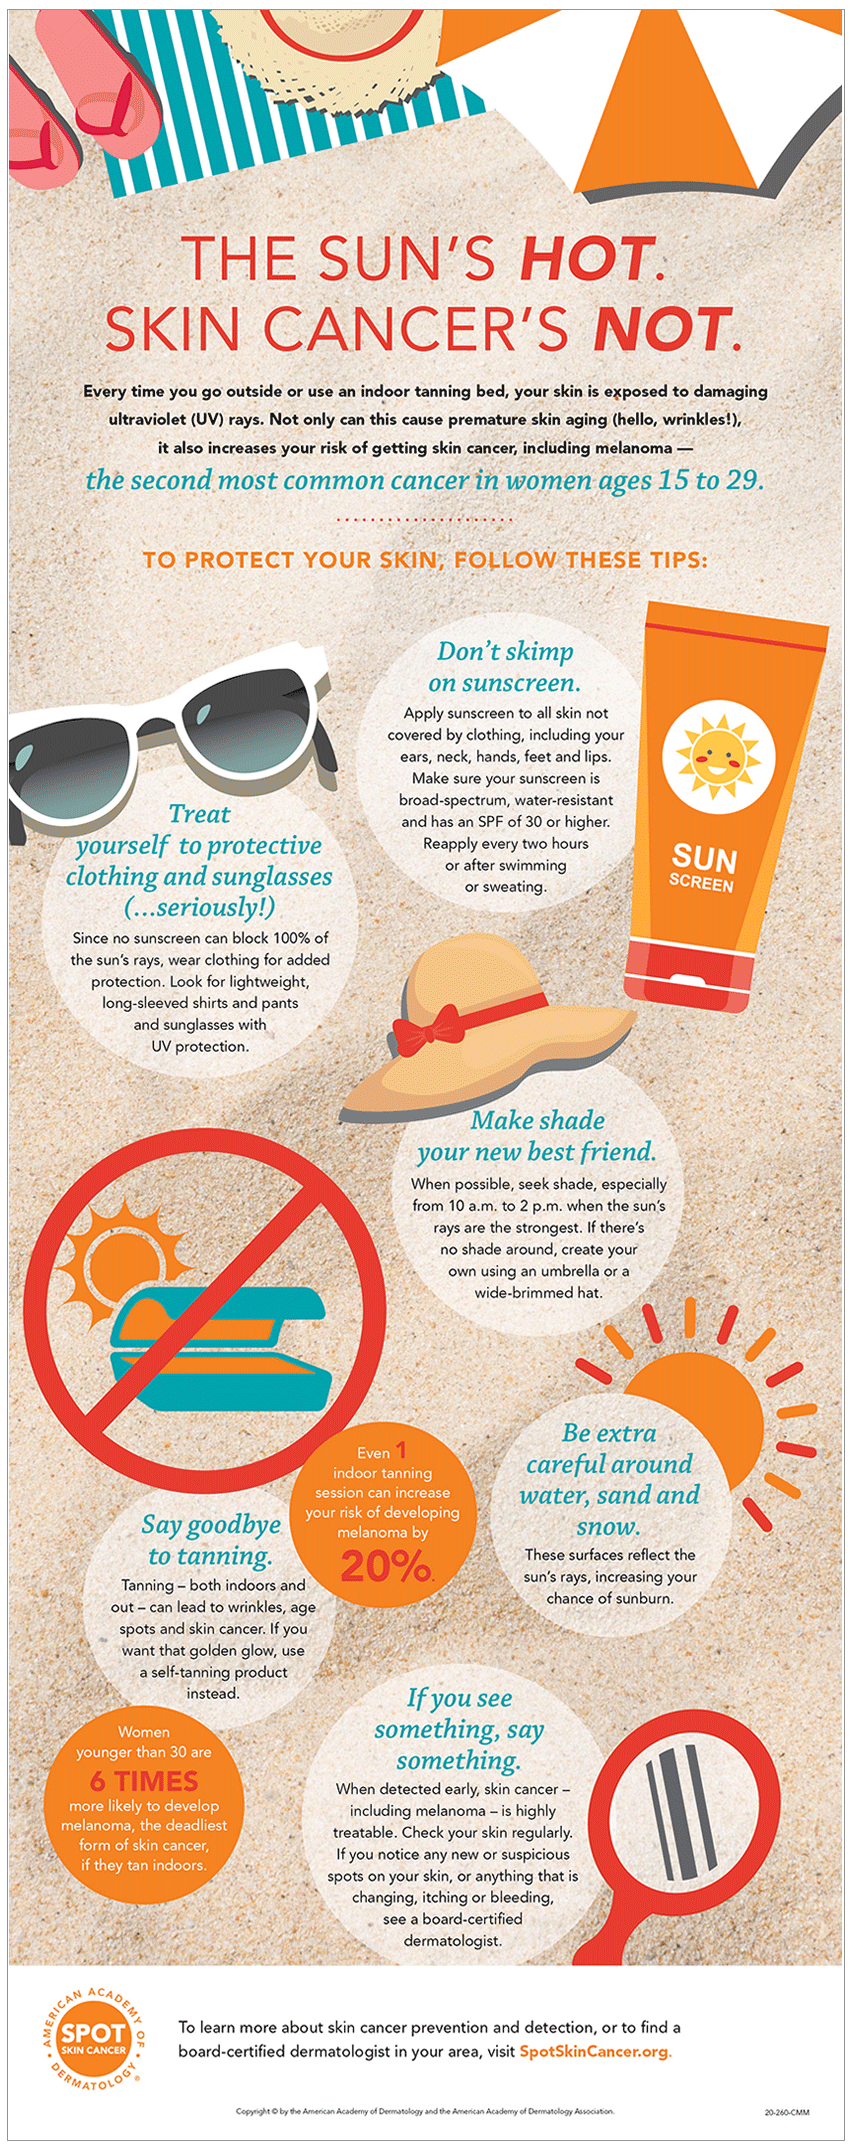 Use this infographic to educate teenage girls about how they can protect their skin and prevent skin cancer.